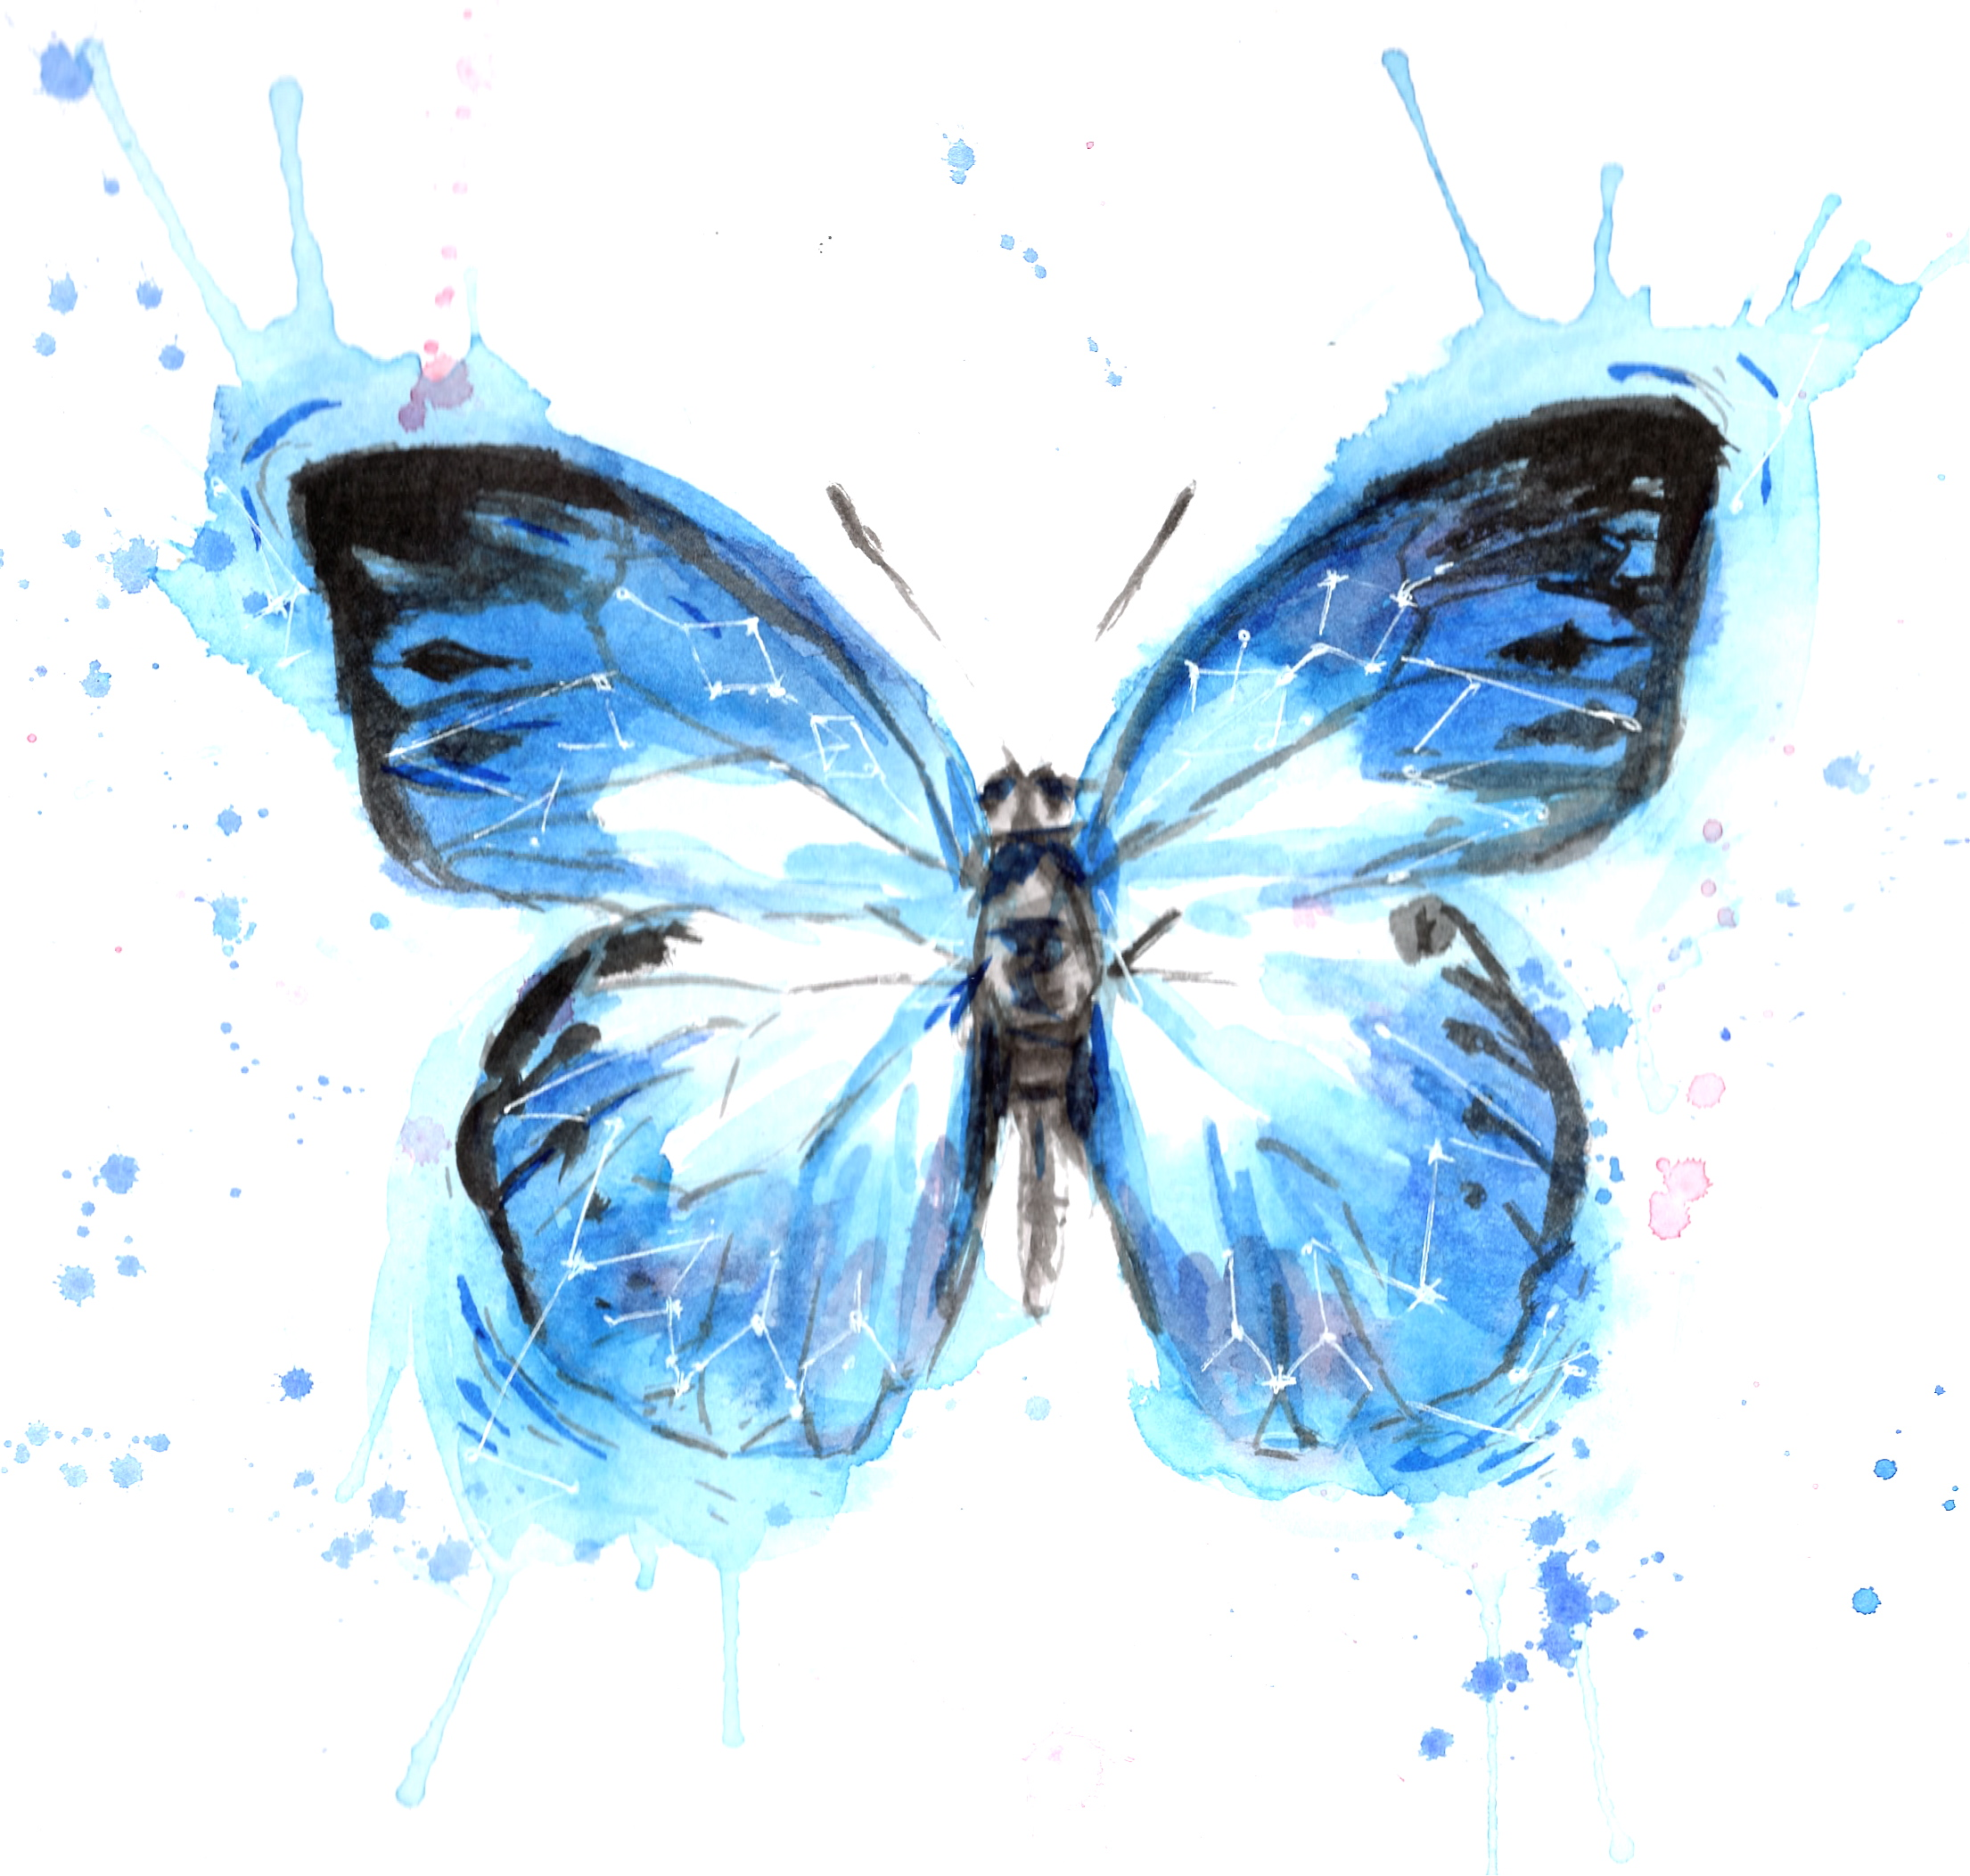 Colorful Animal Print Wallpaper Watercolor Butterfly Blue